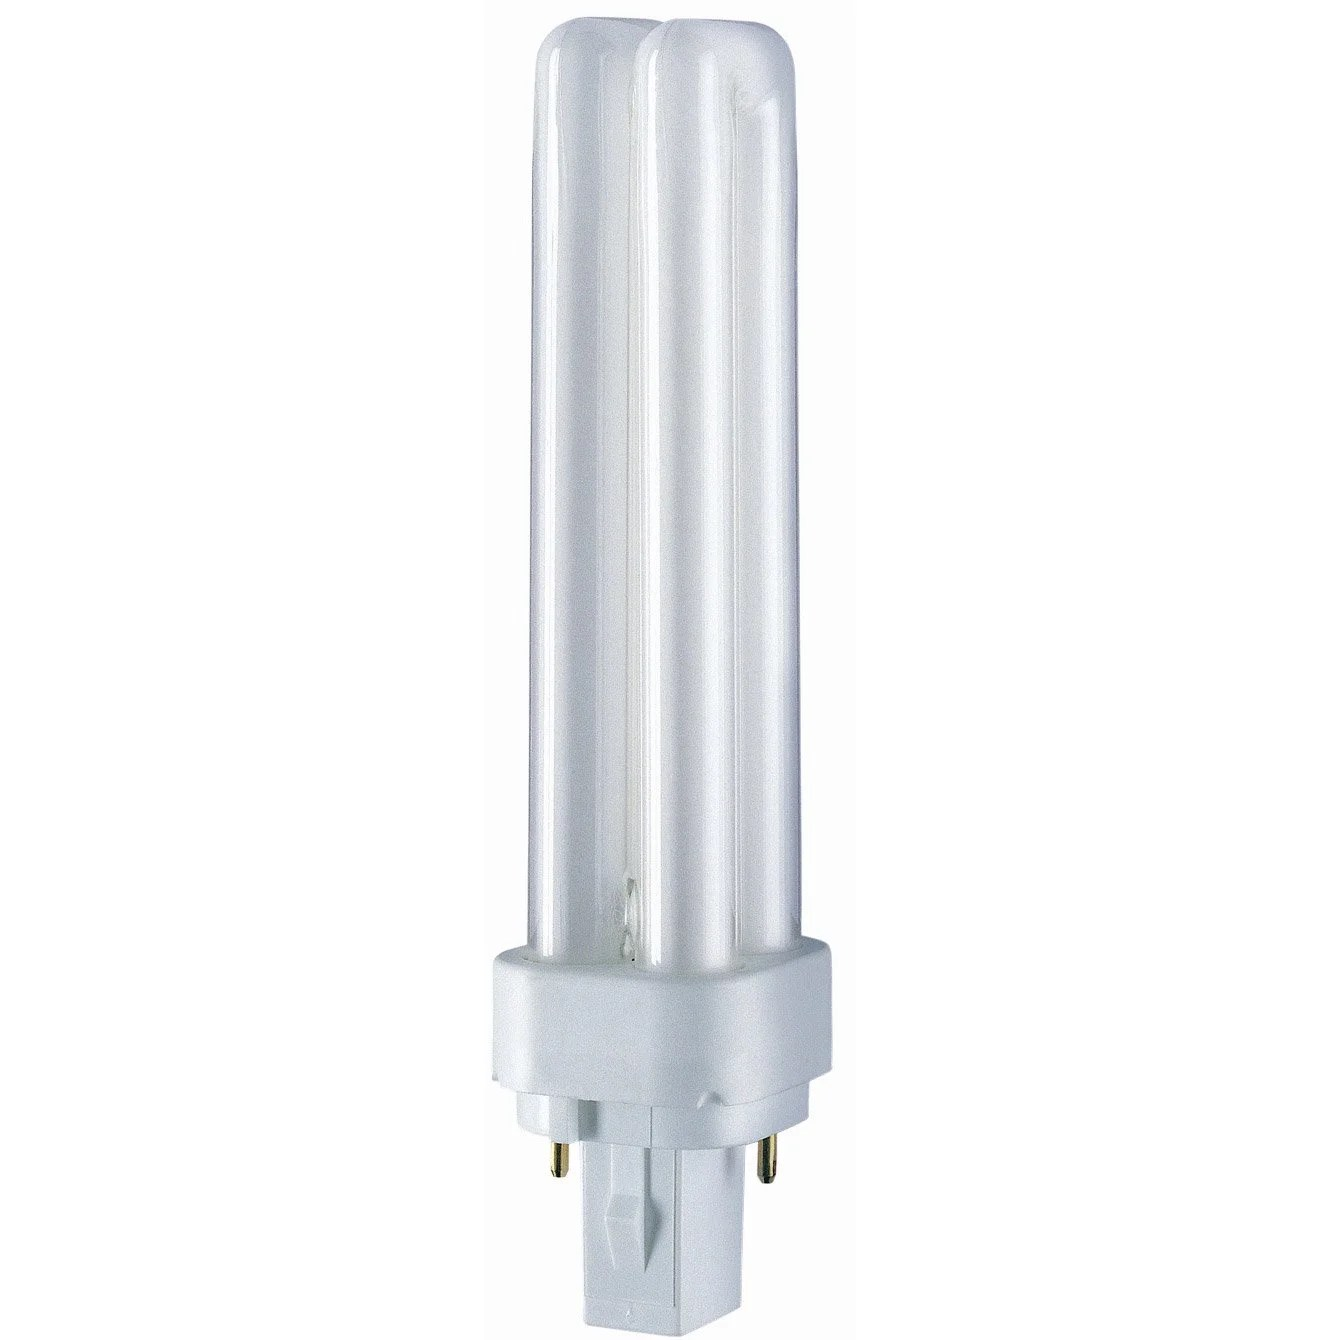 Ampoule 32v 18w Leroy Merlin Ampoule Basse Consommation G24d 18w 1200lm 4000k Osram